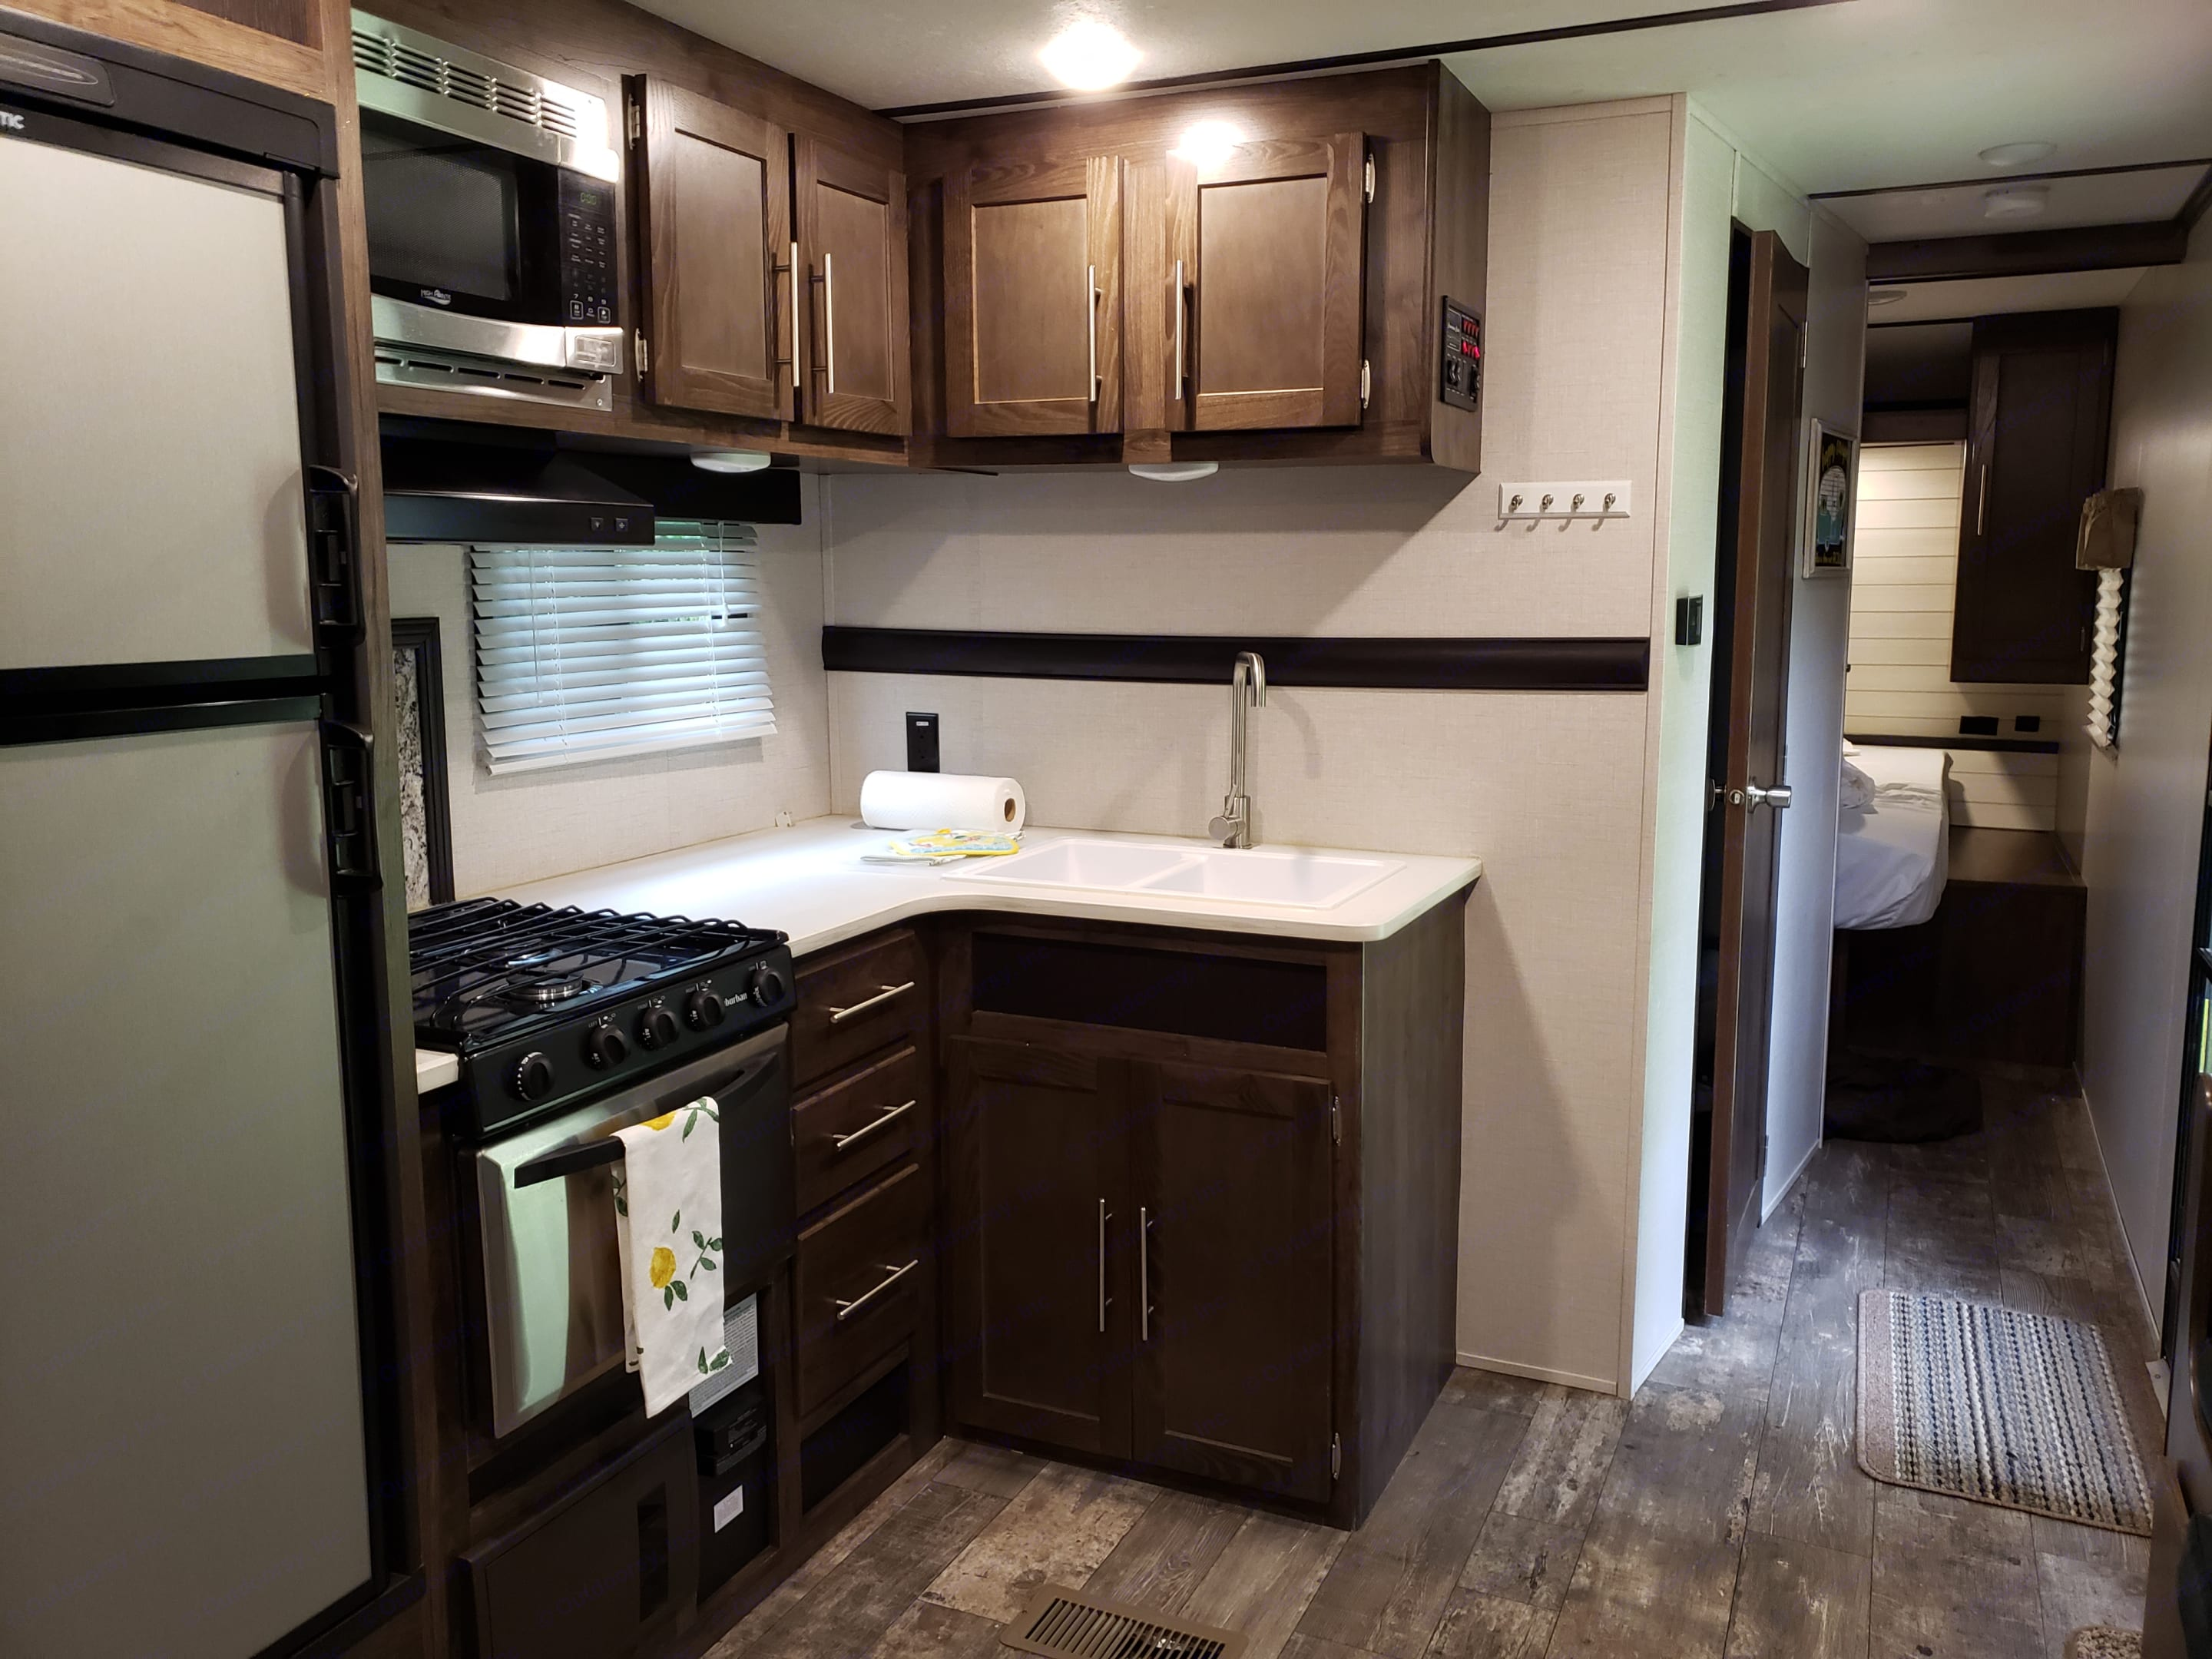 Four burner gas range with oven and microwave.. Crossroads Other 2018